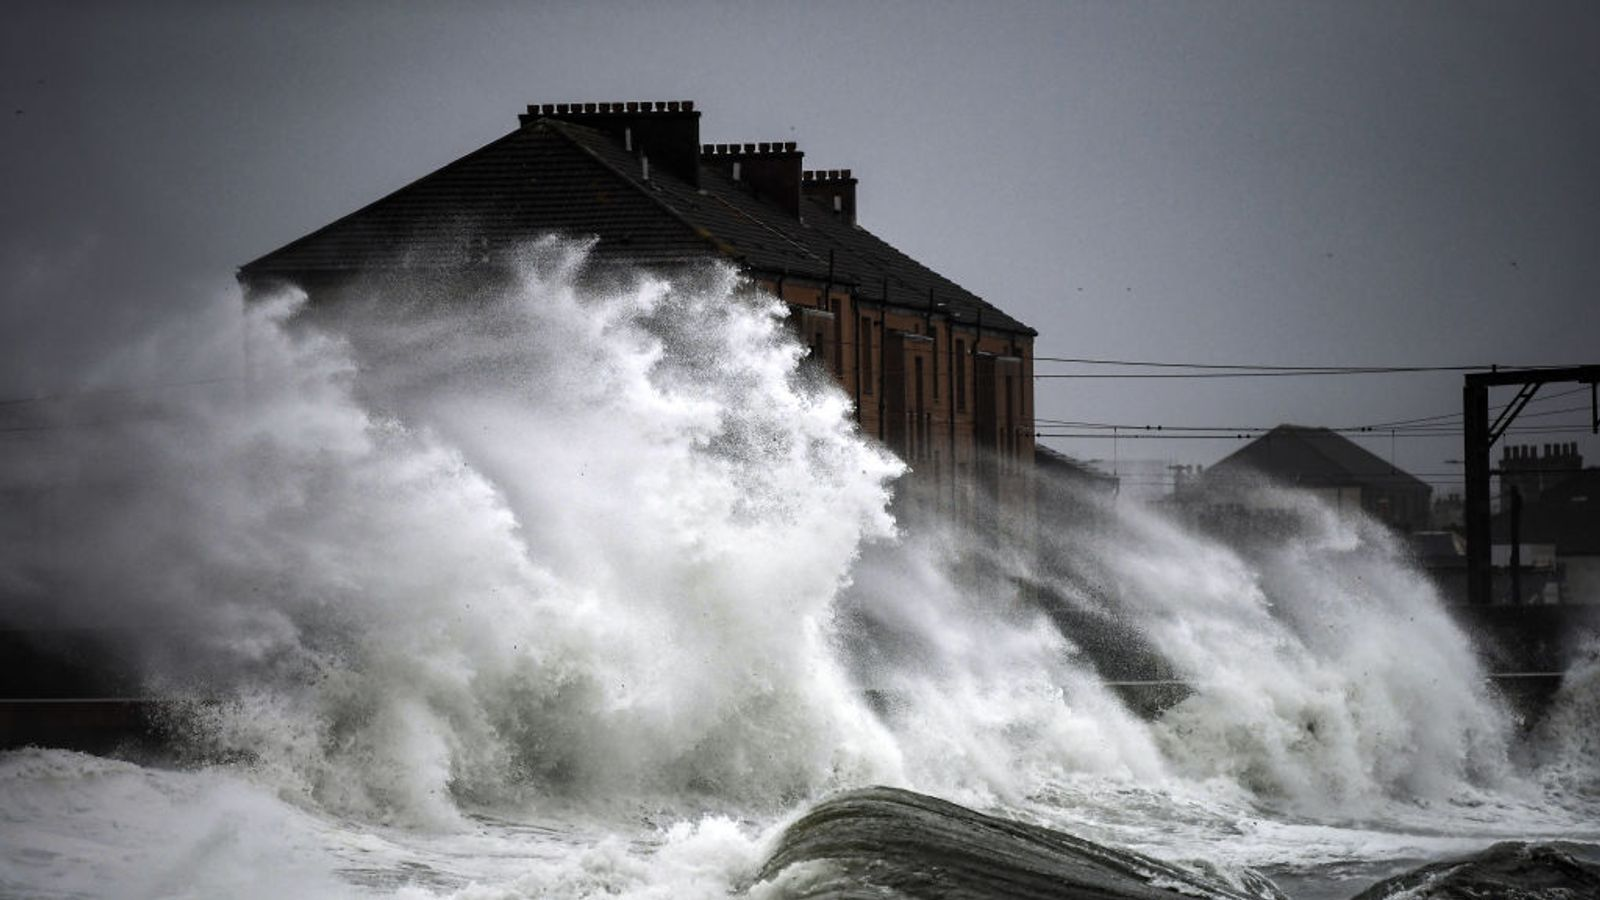 UK's future flooding risk: 'We can't win a war against water'